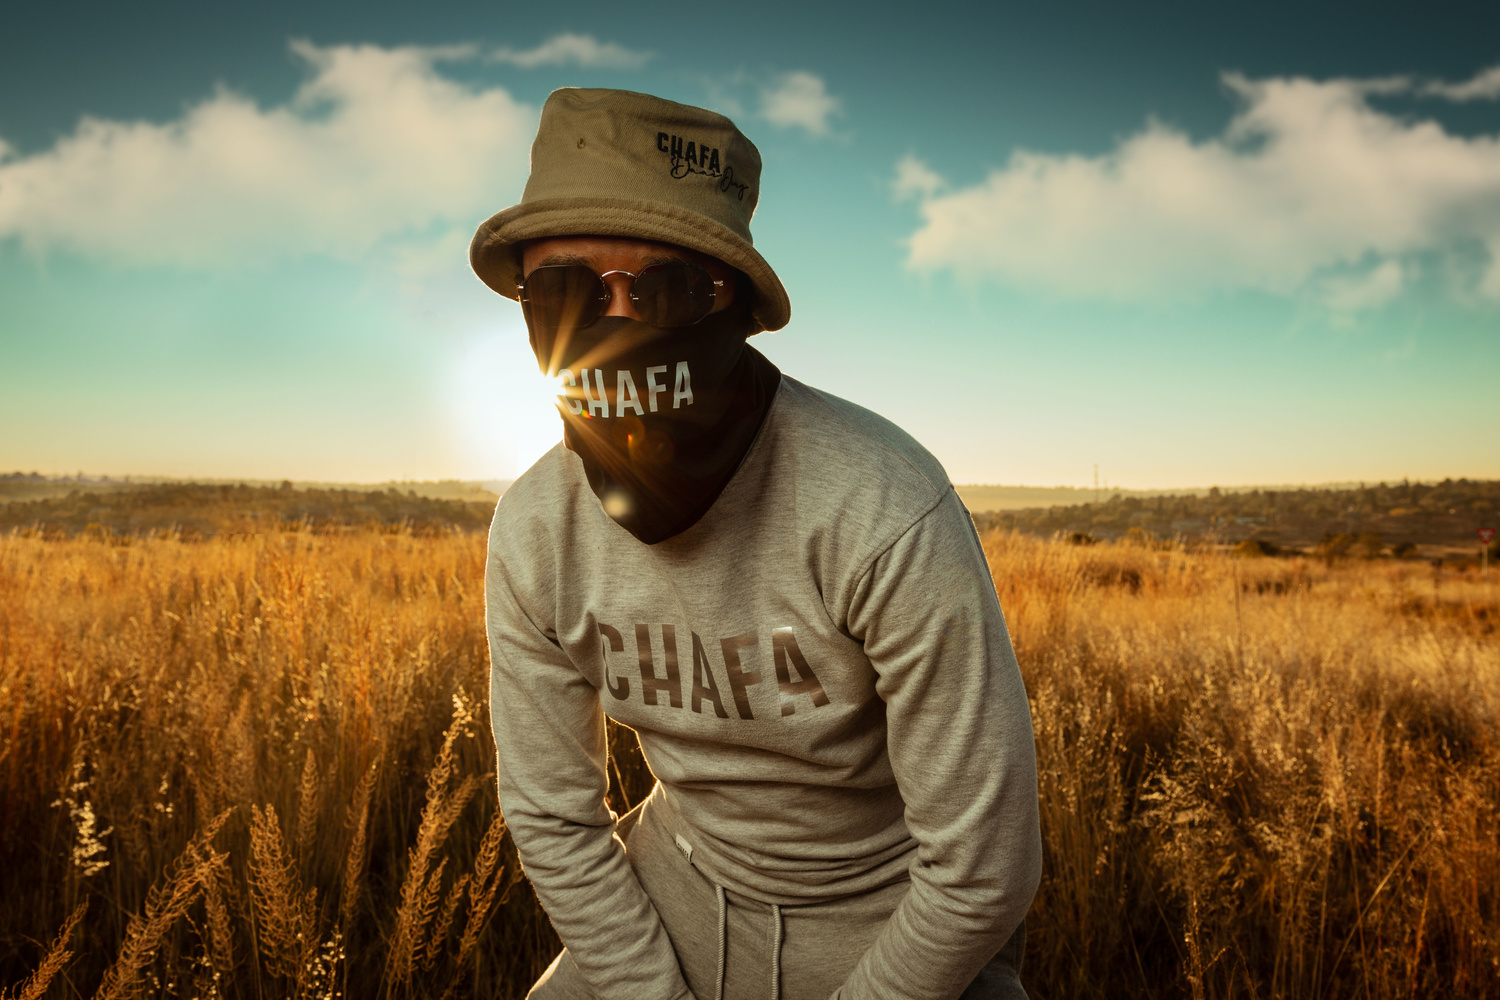 Fashion shoot for a local brand to promote some of it's new merch by Lethu Zimu